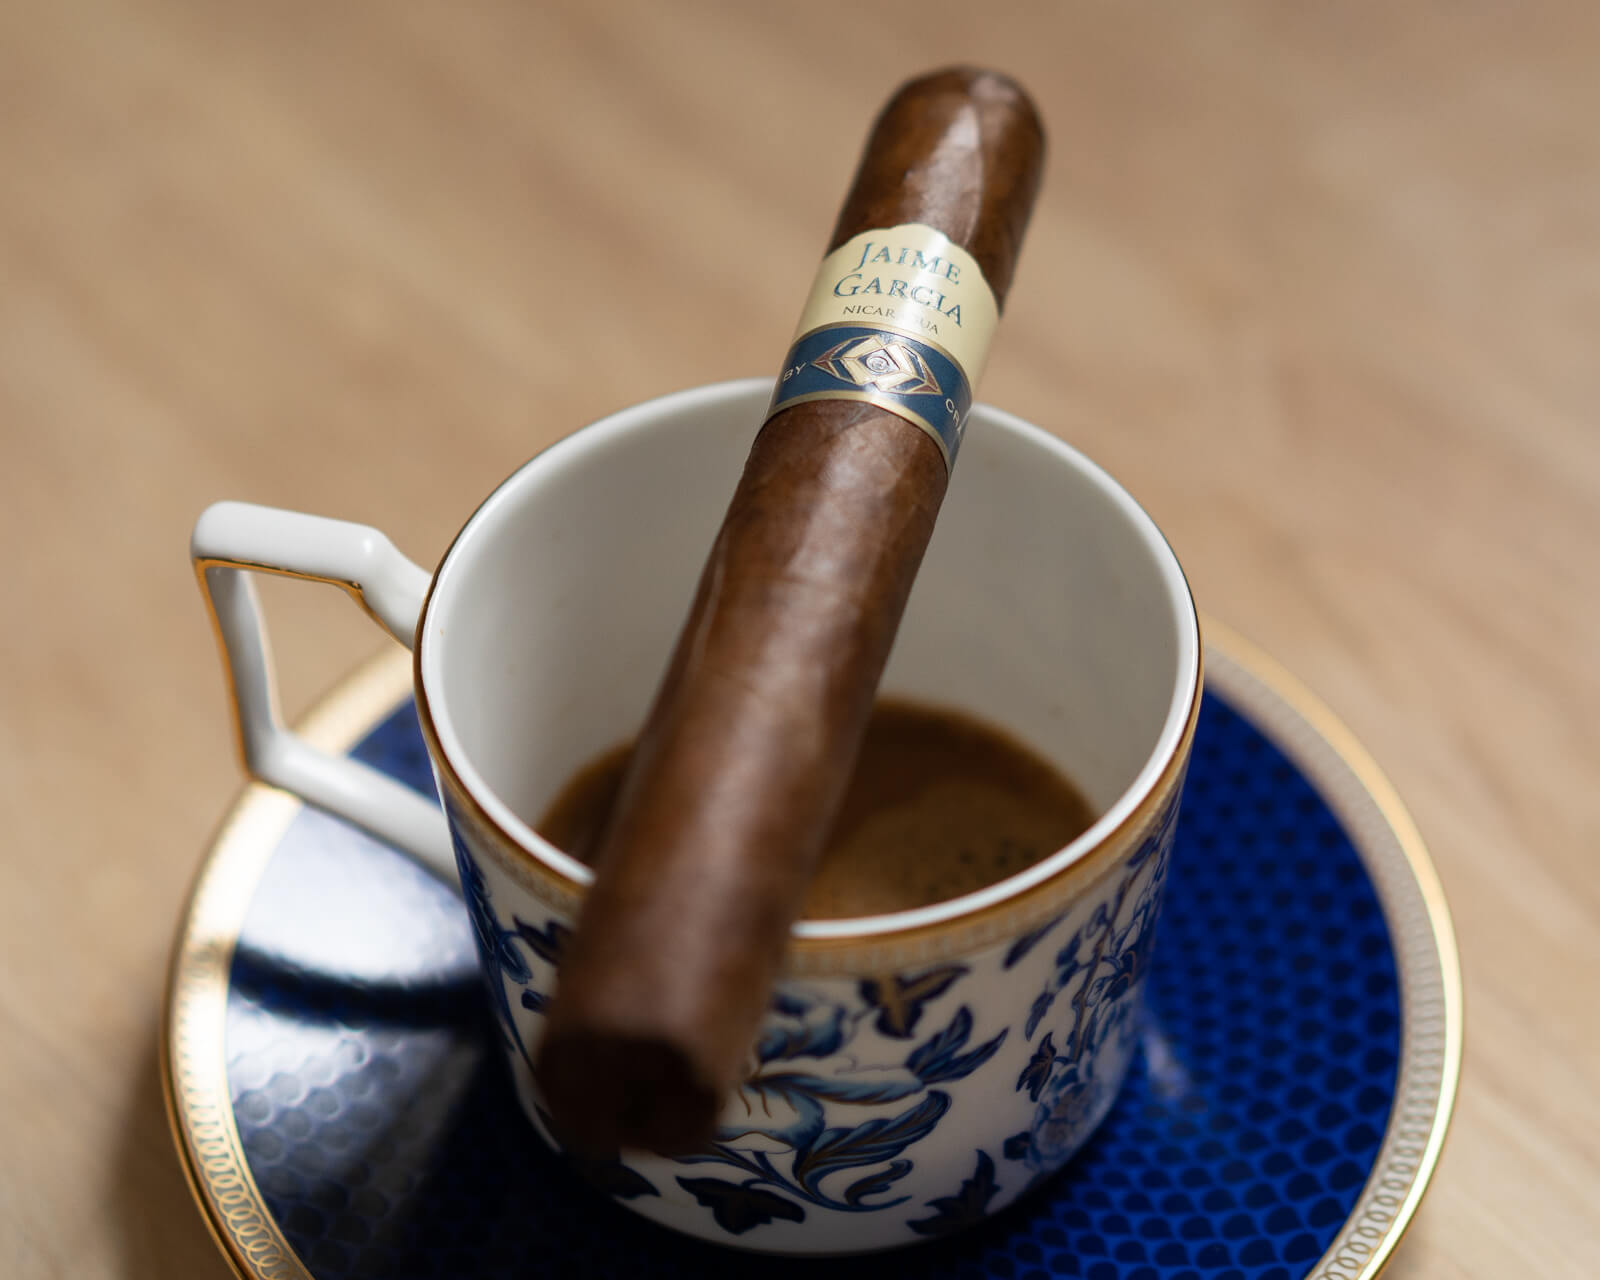 crafted by jaime garcia toro review 2